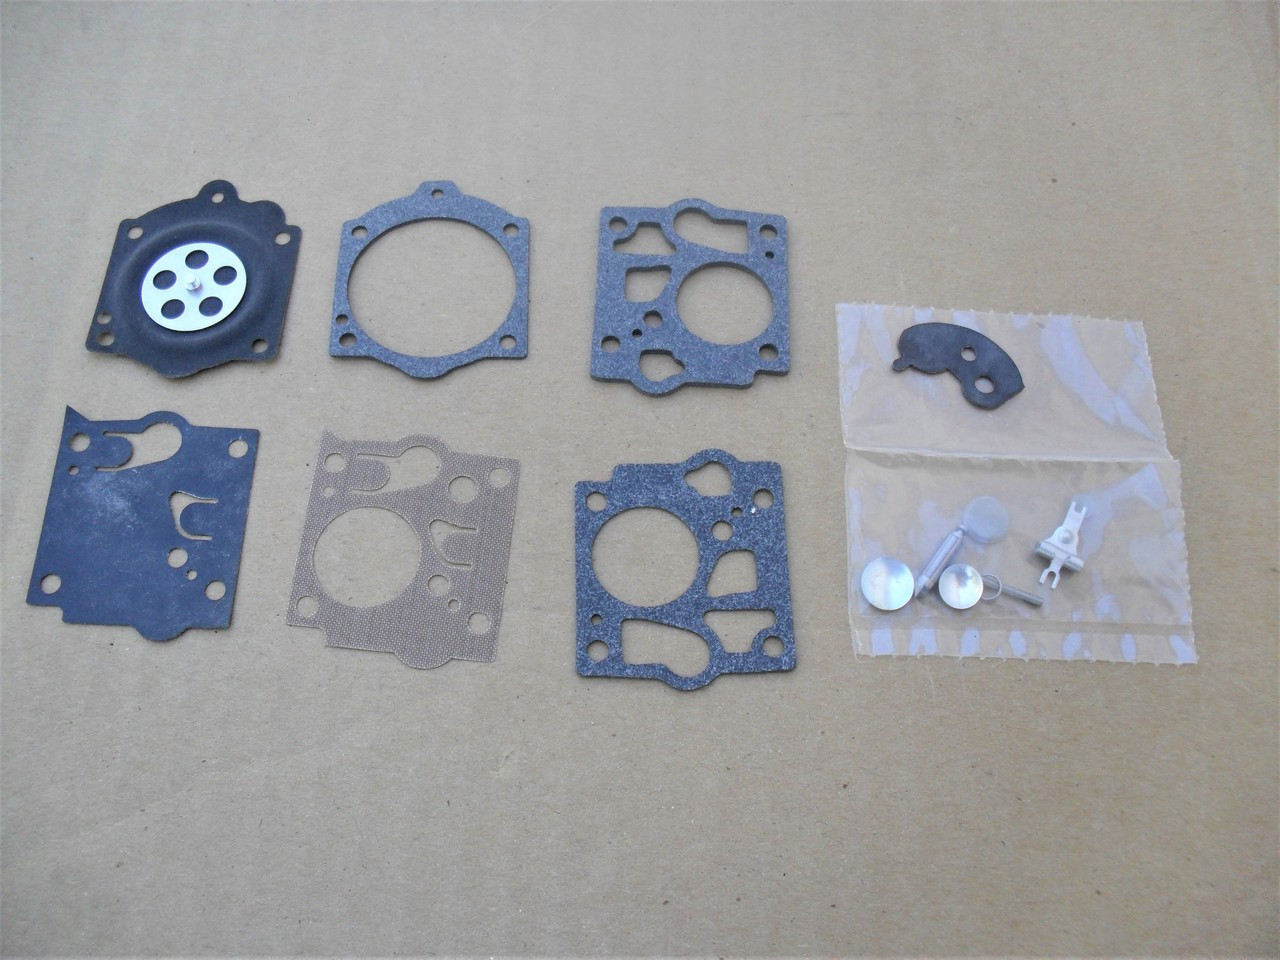 carburetor rebuild kit for jacobsen sno burst snowblower k1 sdc k1sdc k10  [ 1280 x 960 Pixel ]